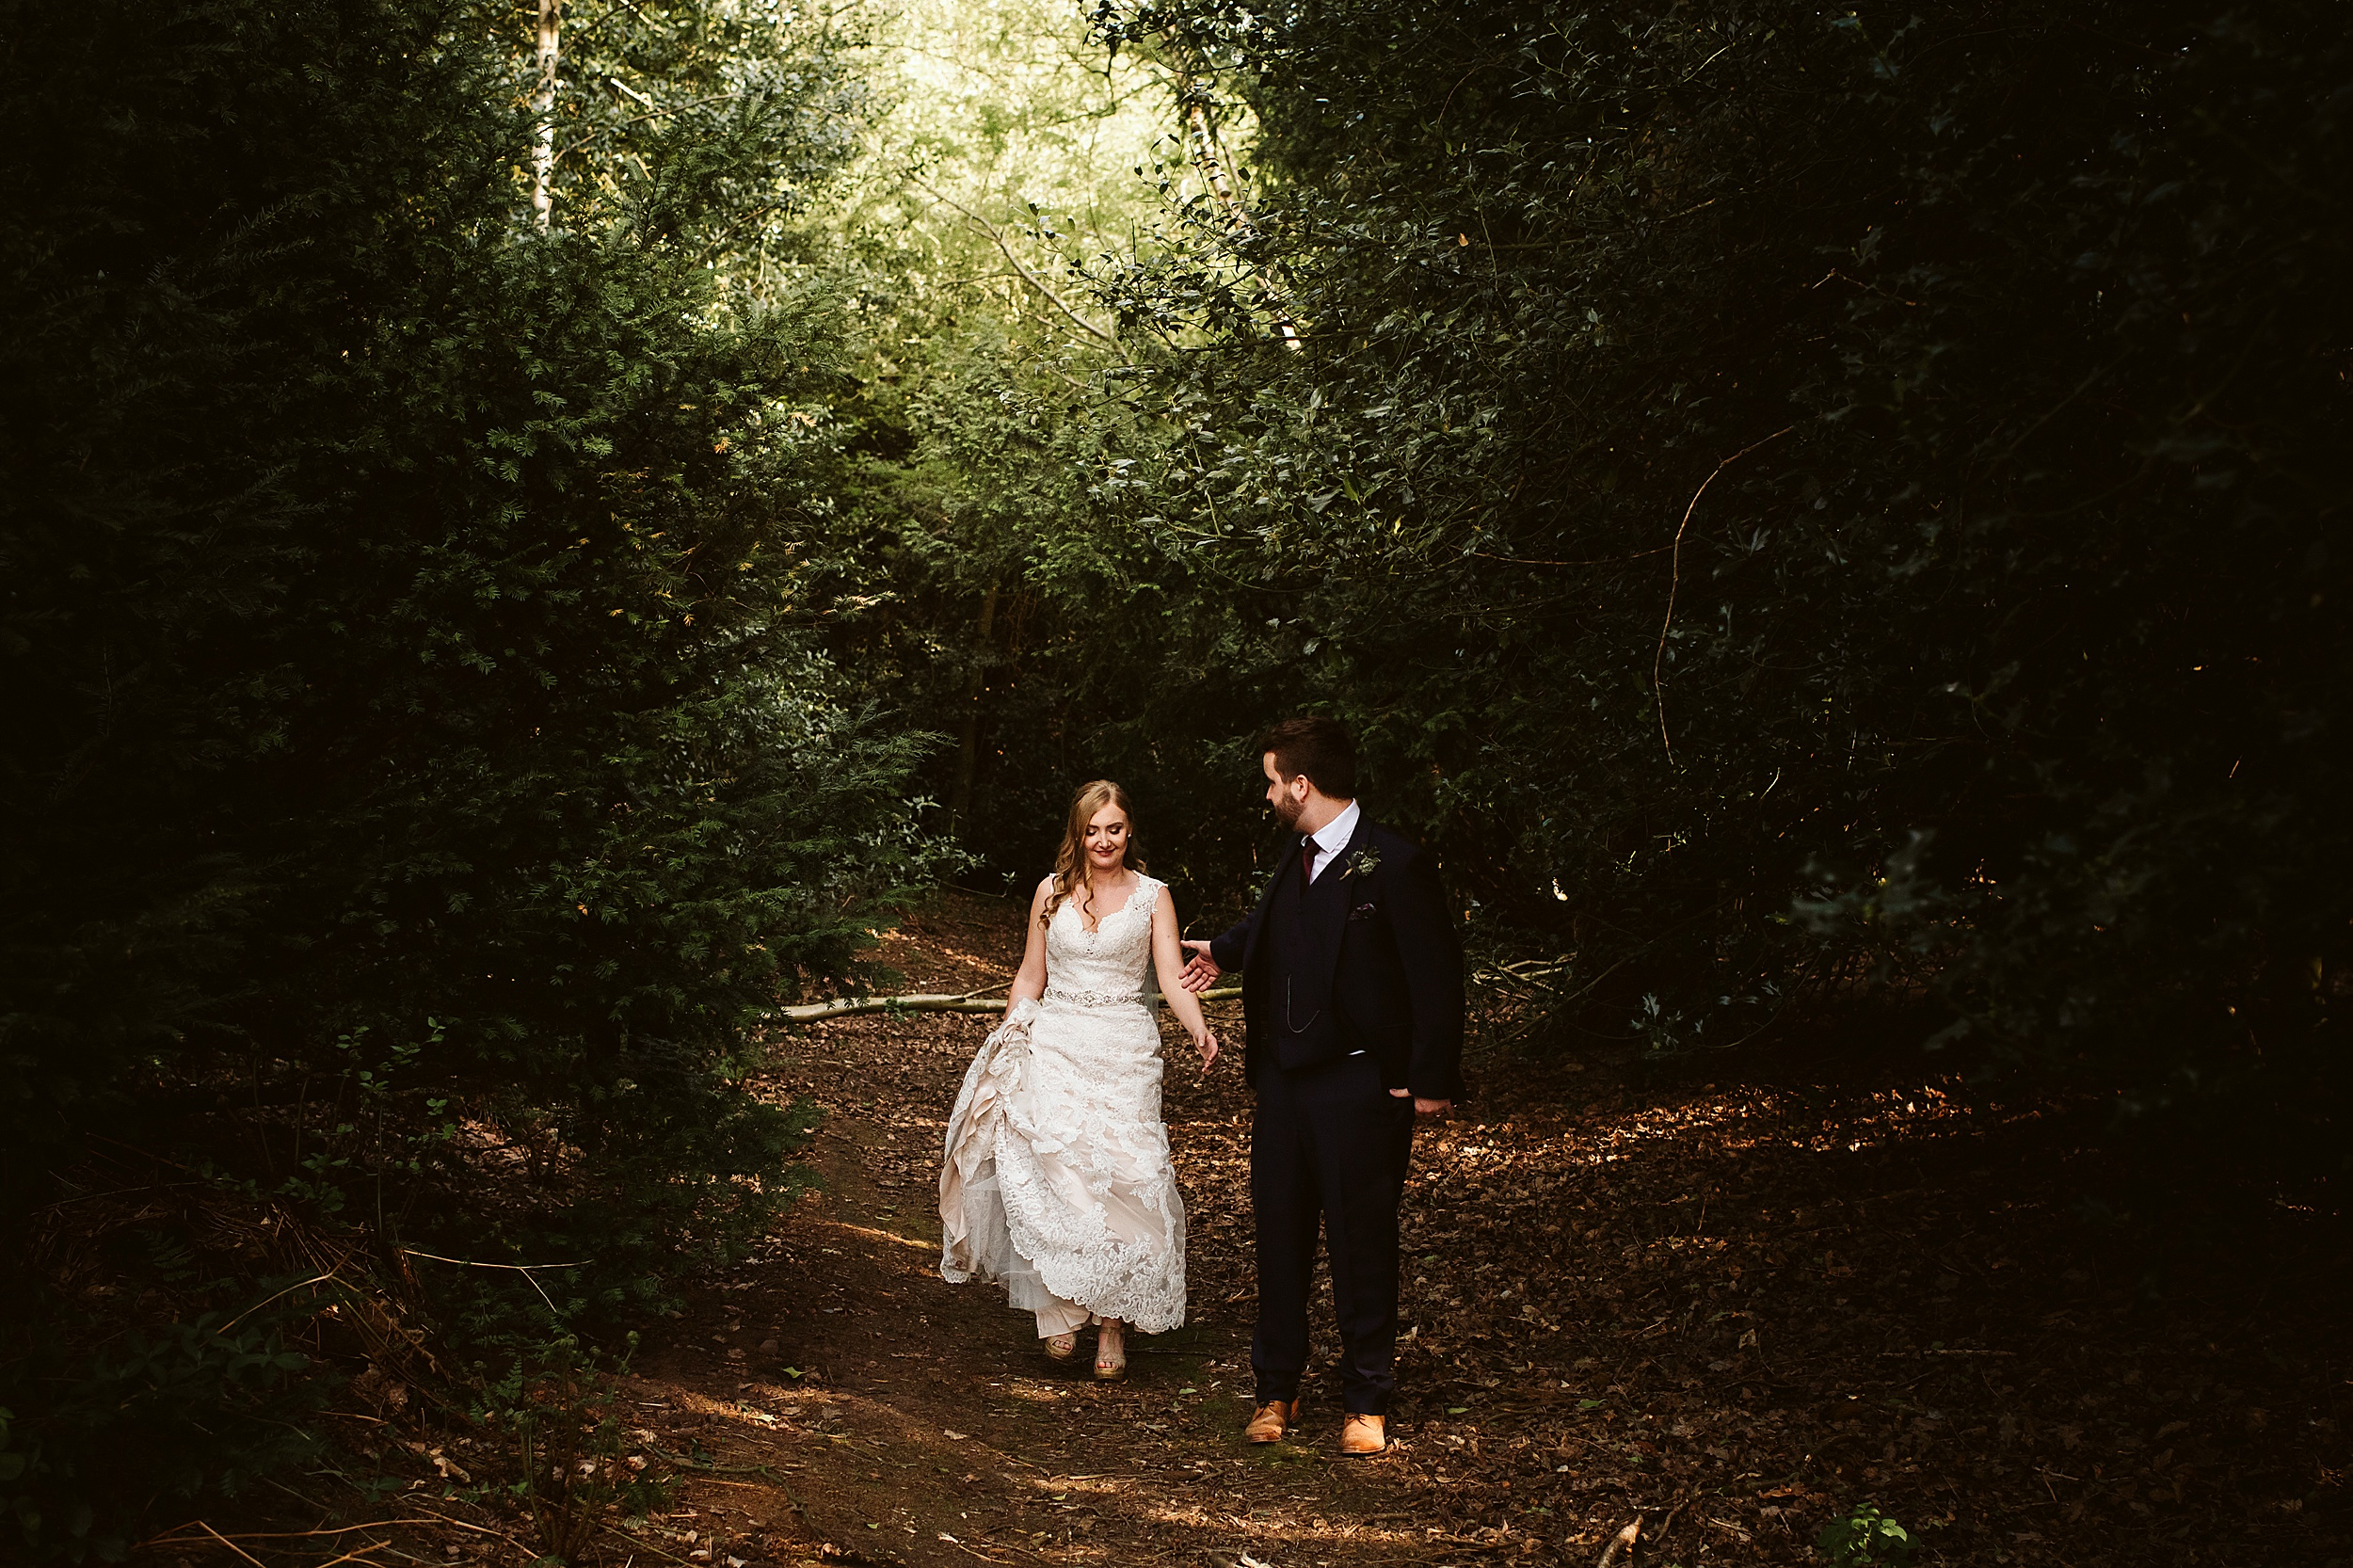 Peckforton_Castle_Cheshire_Toronto_Wedding_Photographer_UK_Destination_Wedding_0088.jpg